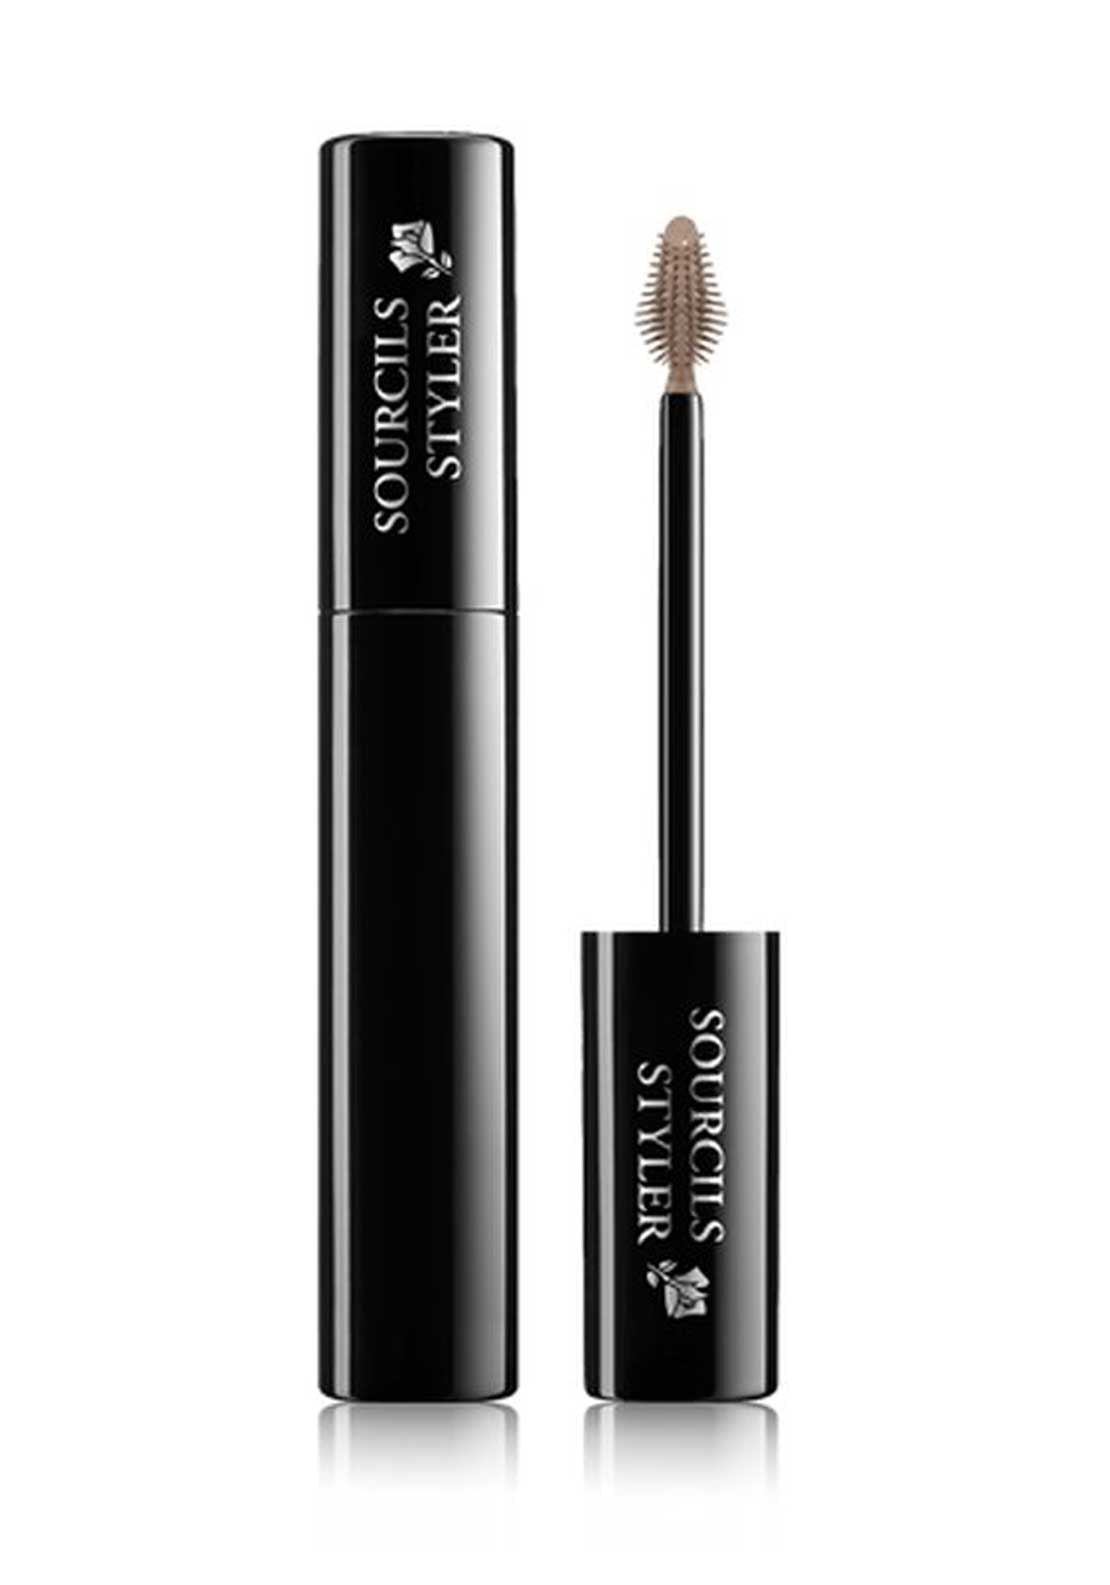 Lancome Sourcils Styler Brow Styler, Blond